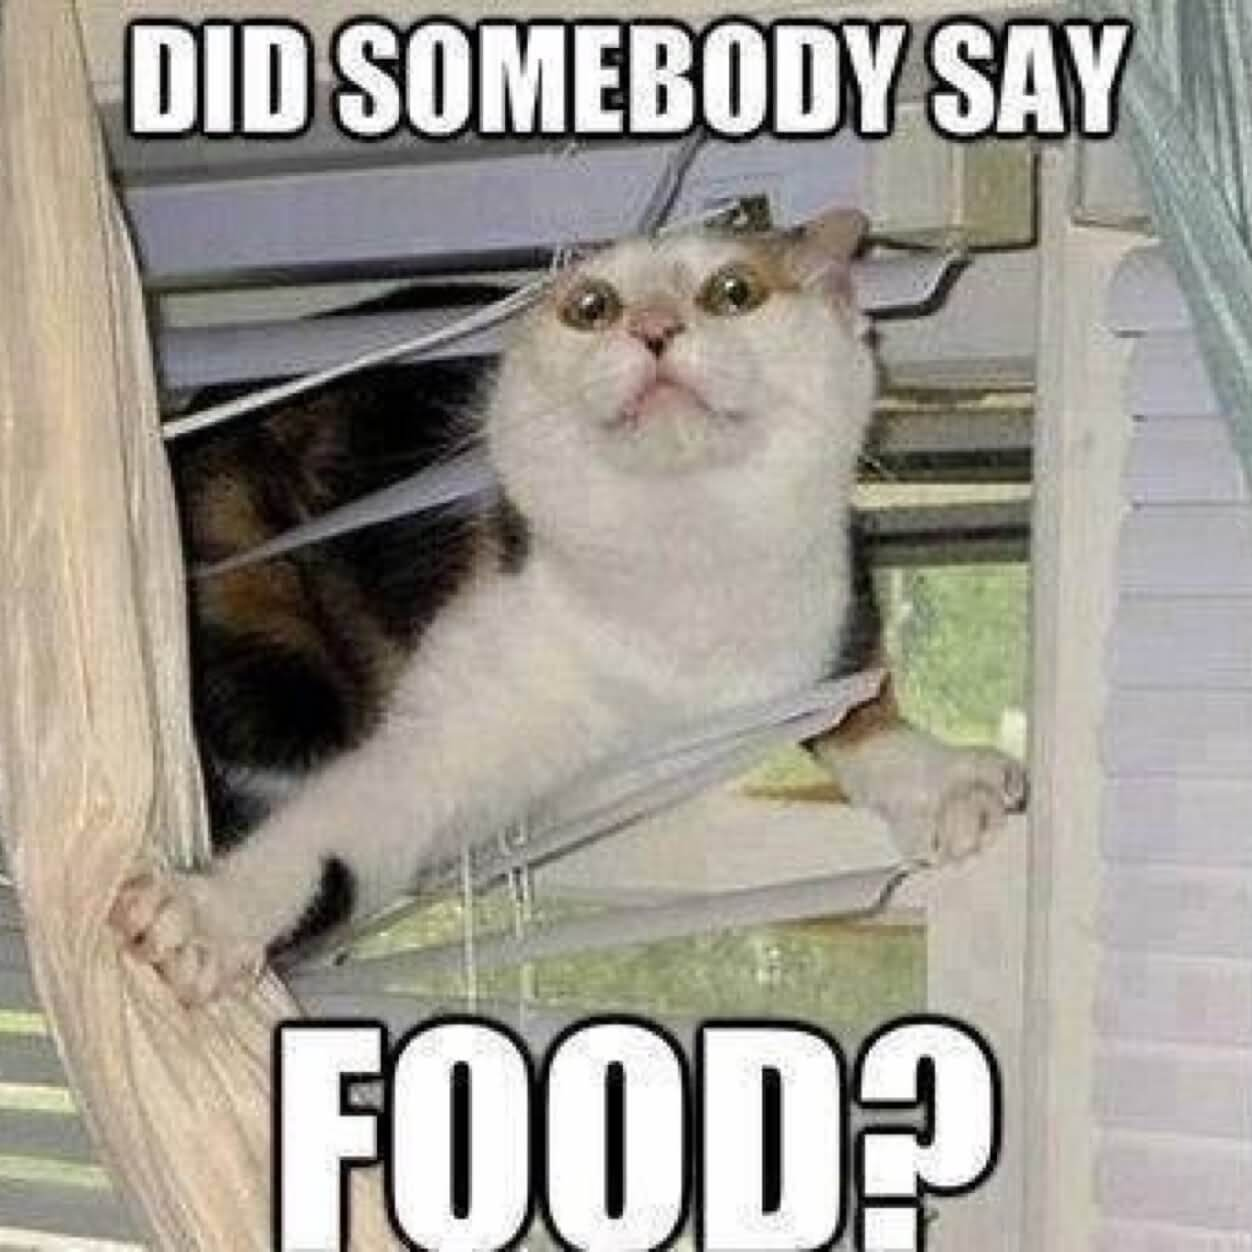 Did somebody say food?